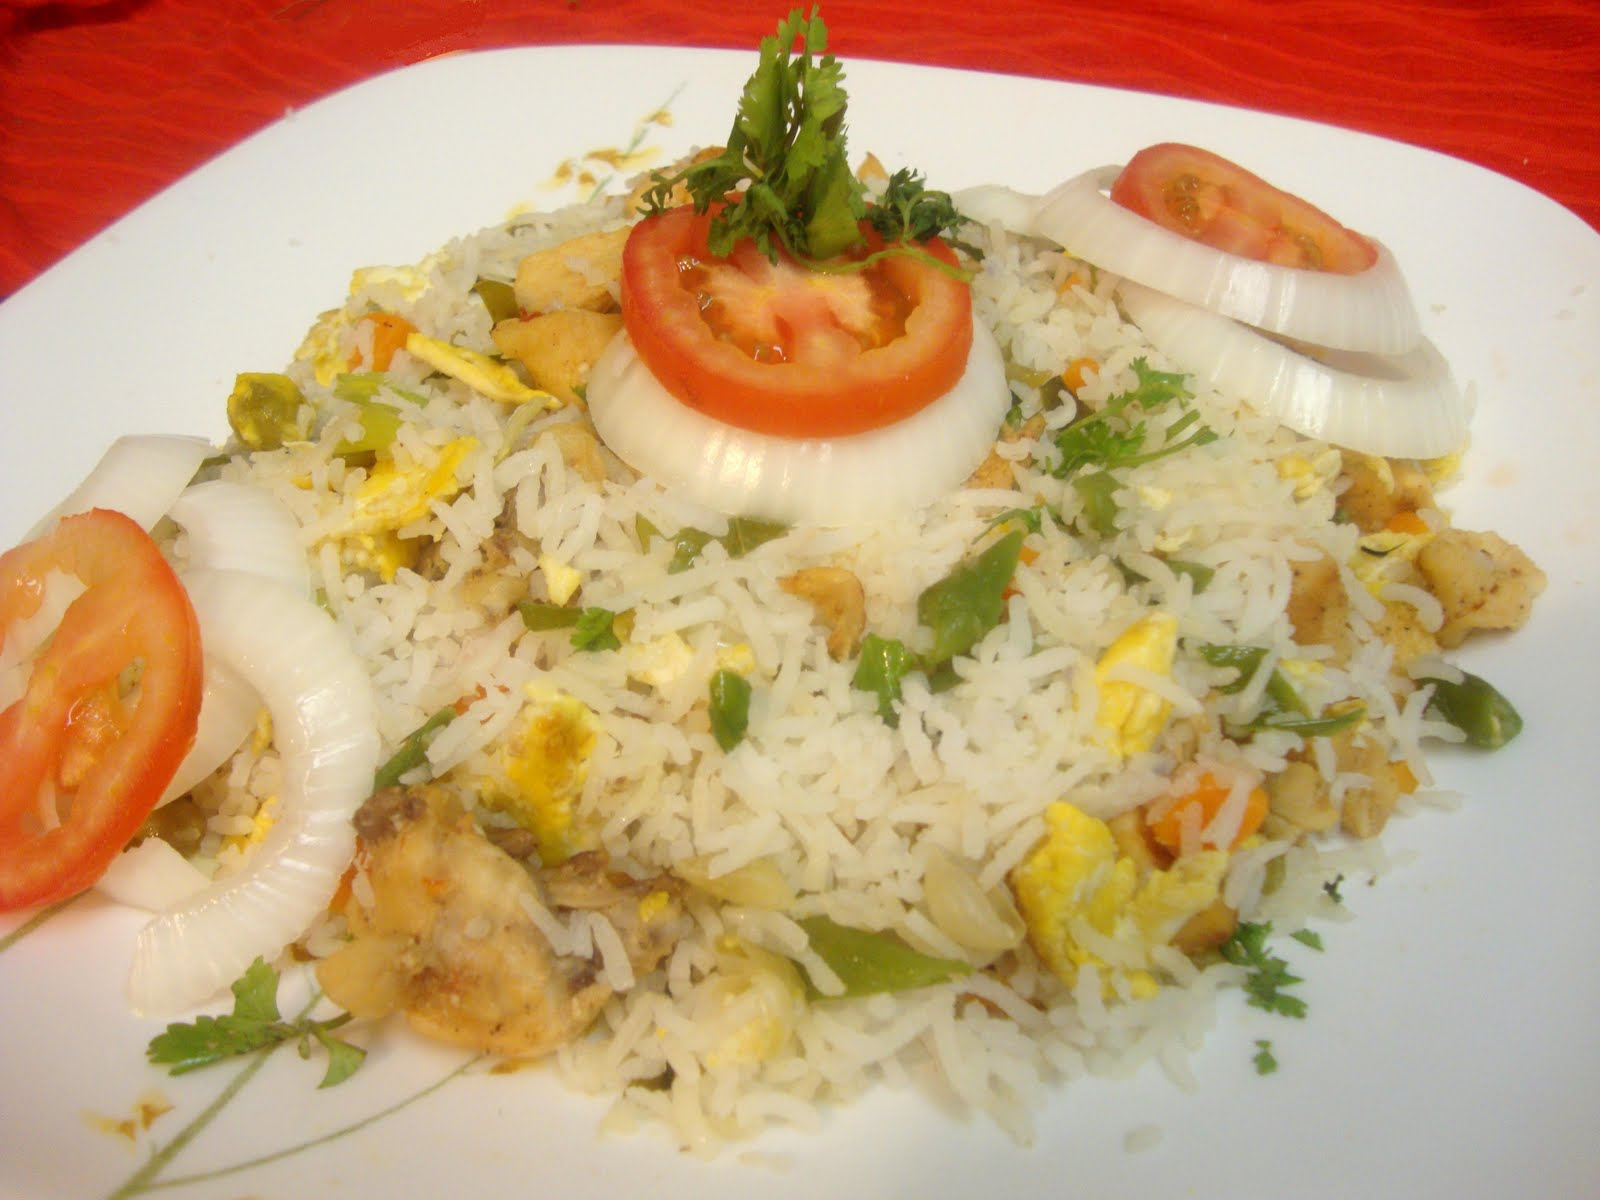 Flavors Of South India: Chicken Fried Rice